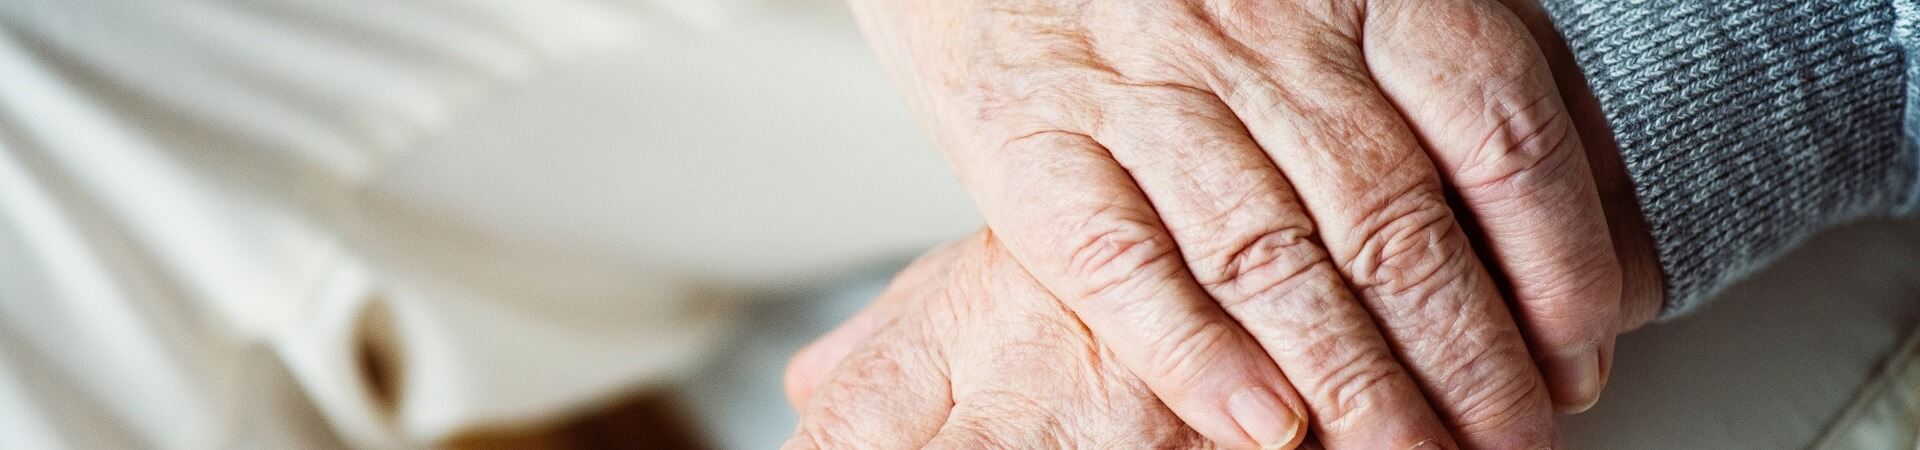 The hands of an elderly person interlock atop their lap.